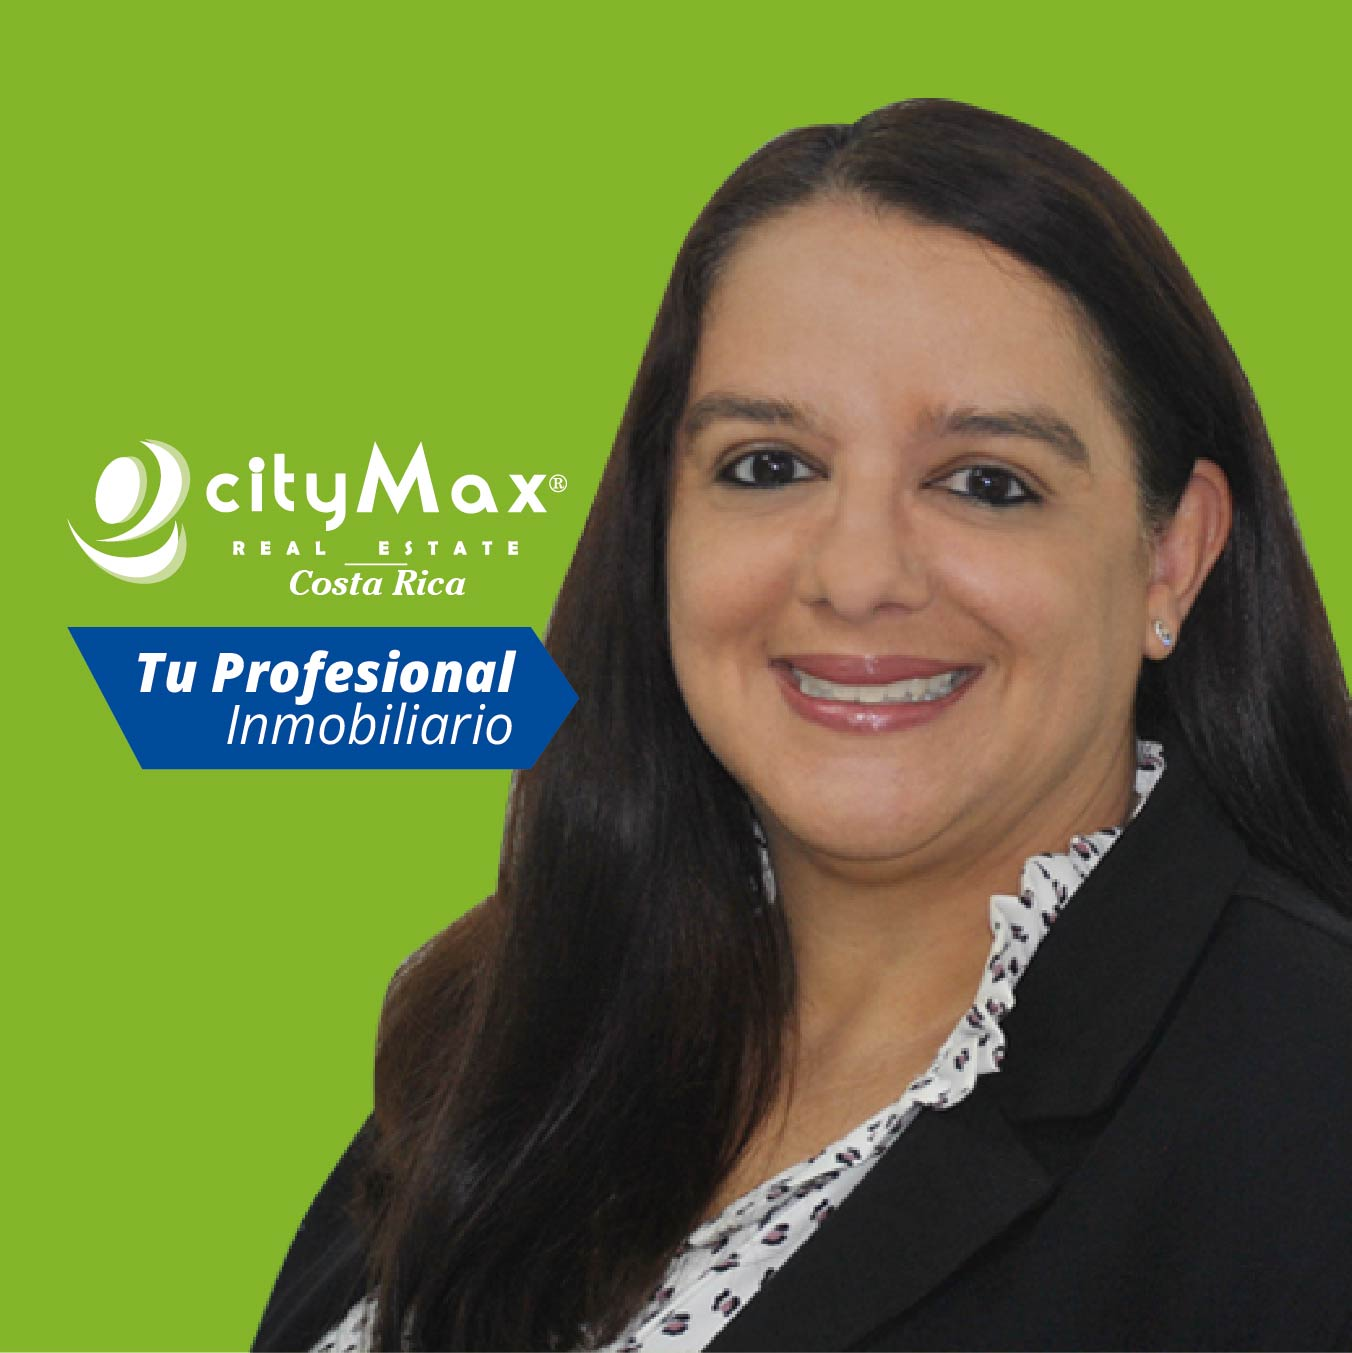 CityMax Real Estate